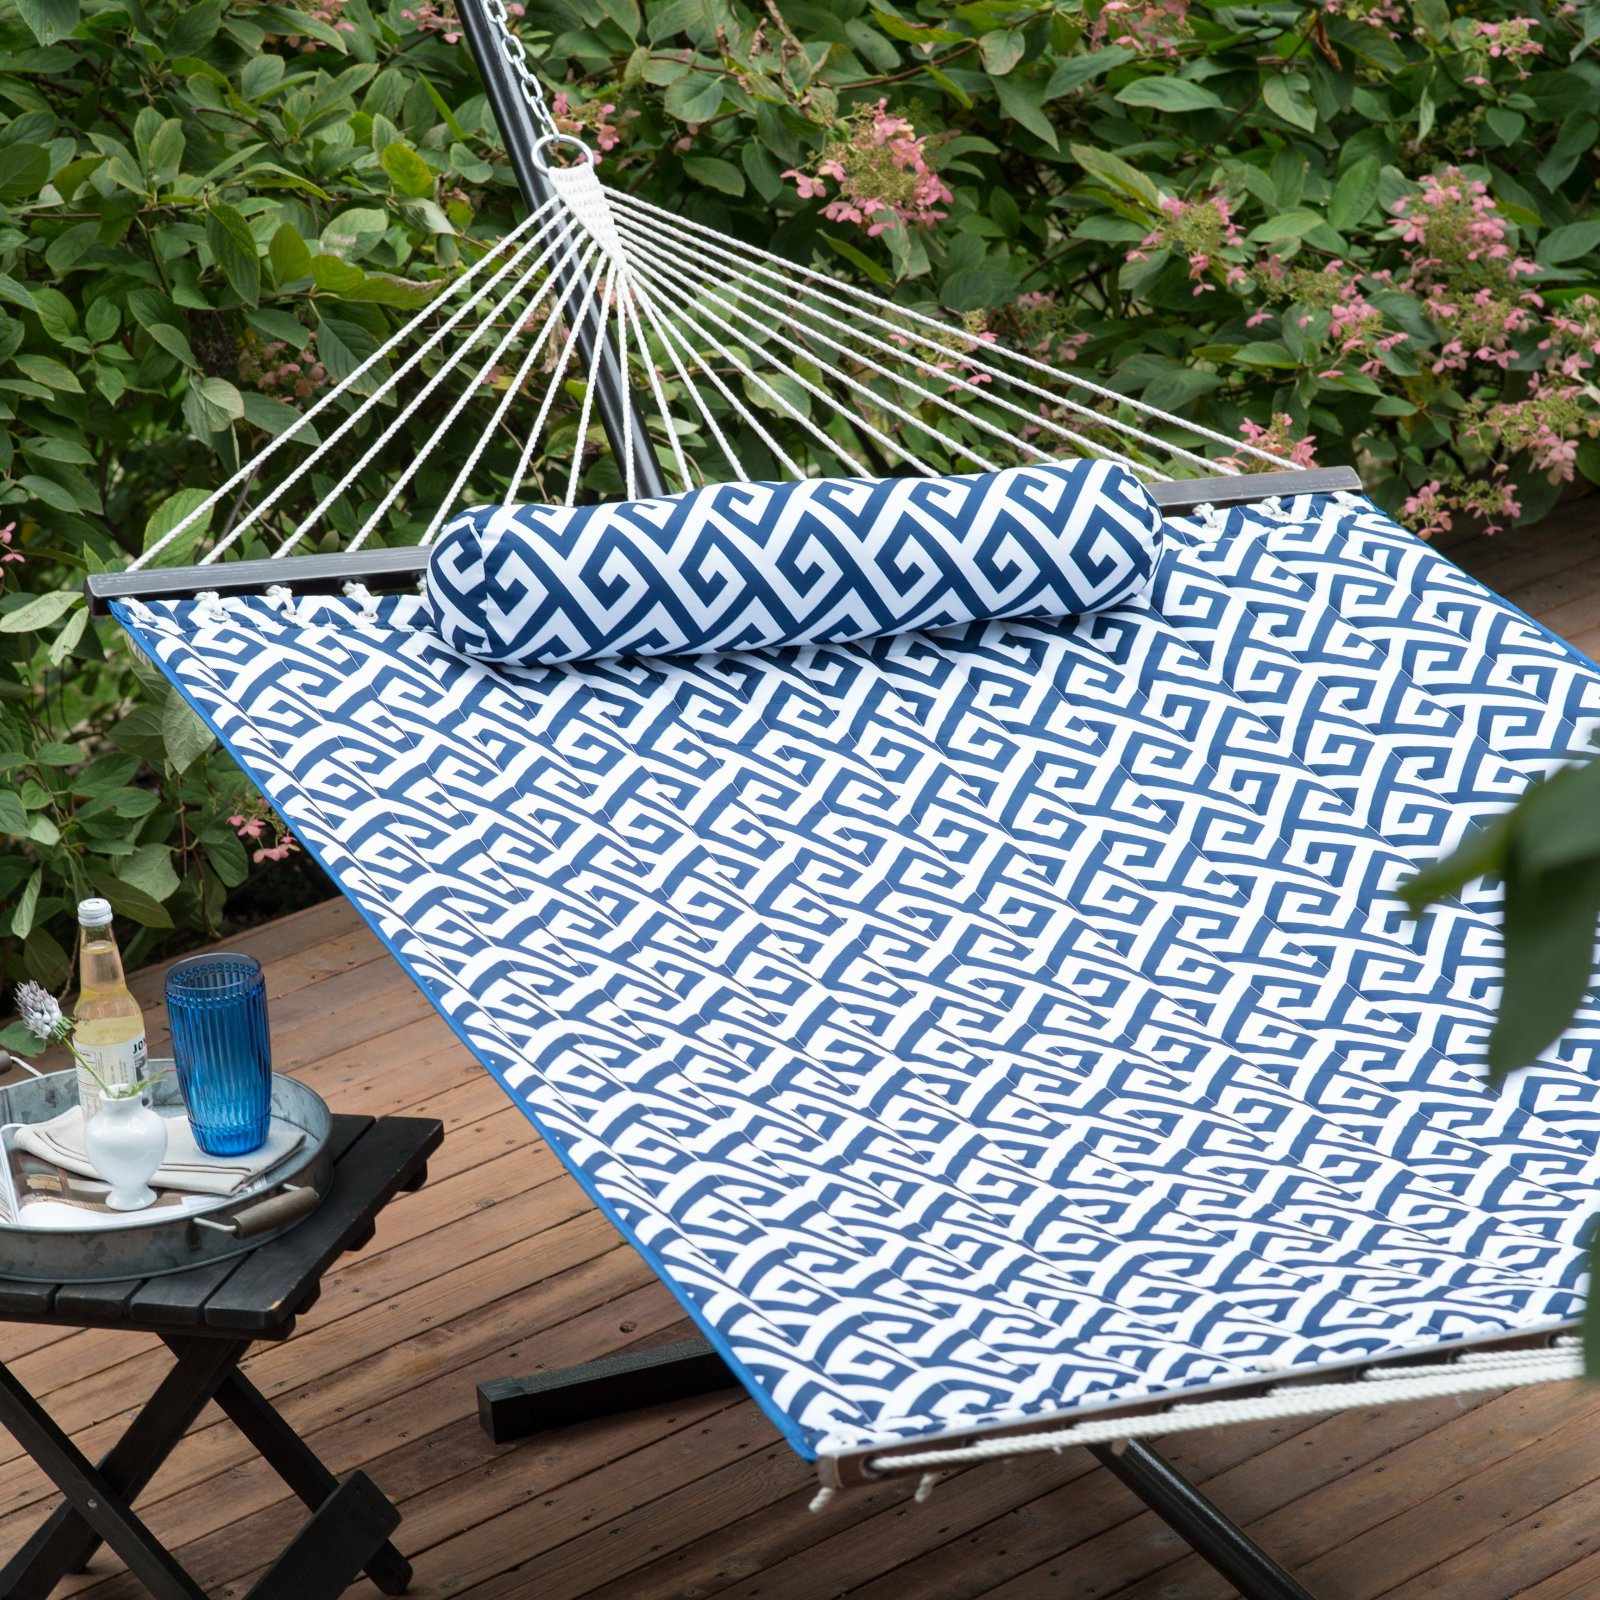 Coral Coast 11-ft. Greek Key Quilted Hammock with Metal Stand Deluxe Set